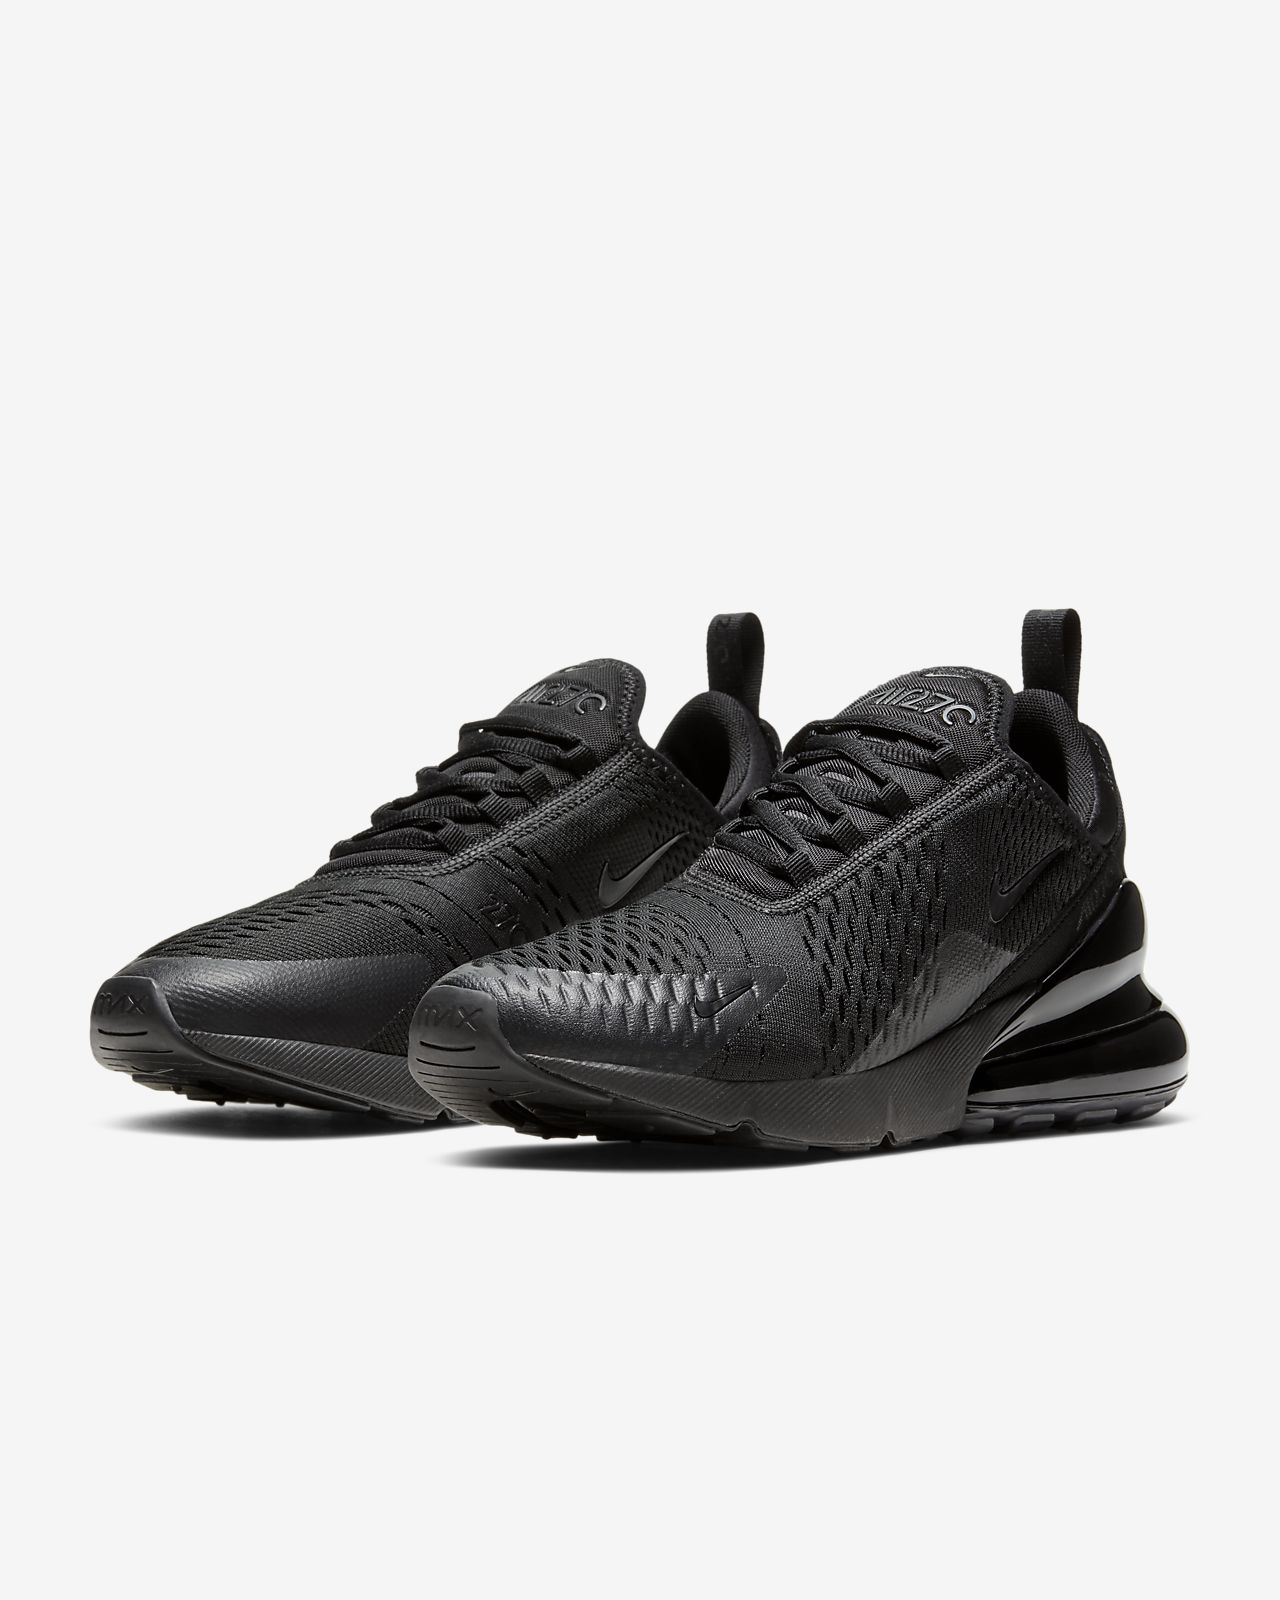 eabb710d7b69b7 Nike Air Max 270 Men s Shoe. Nike.com AU